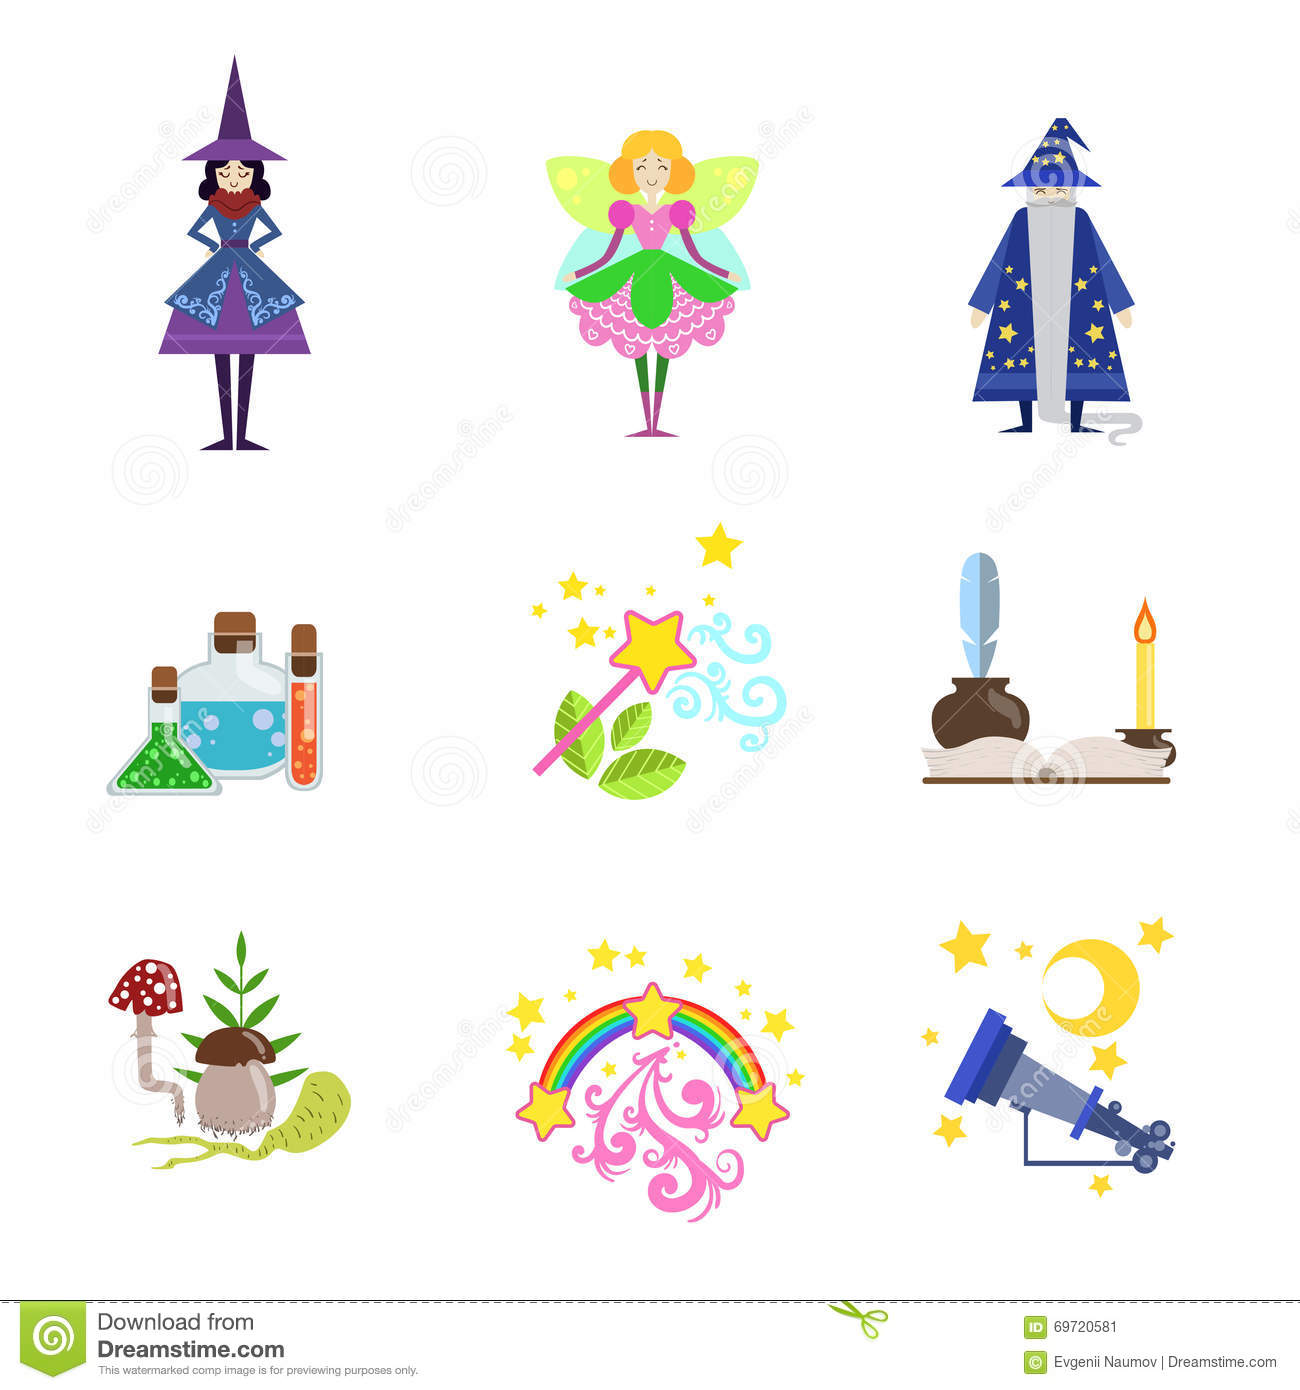 Fairytale Characters And Related To Them Objects Stock